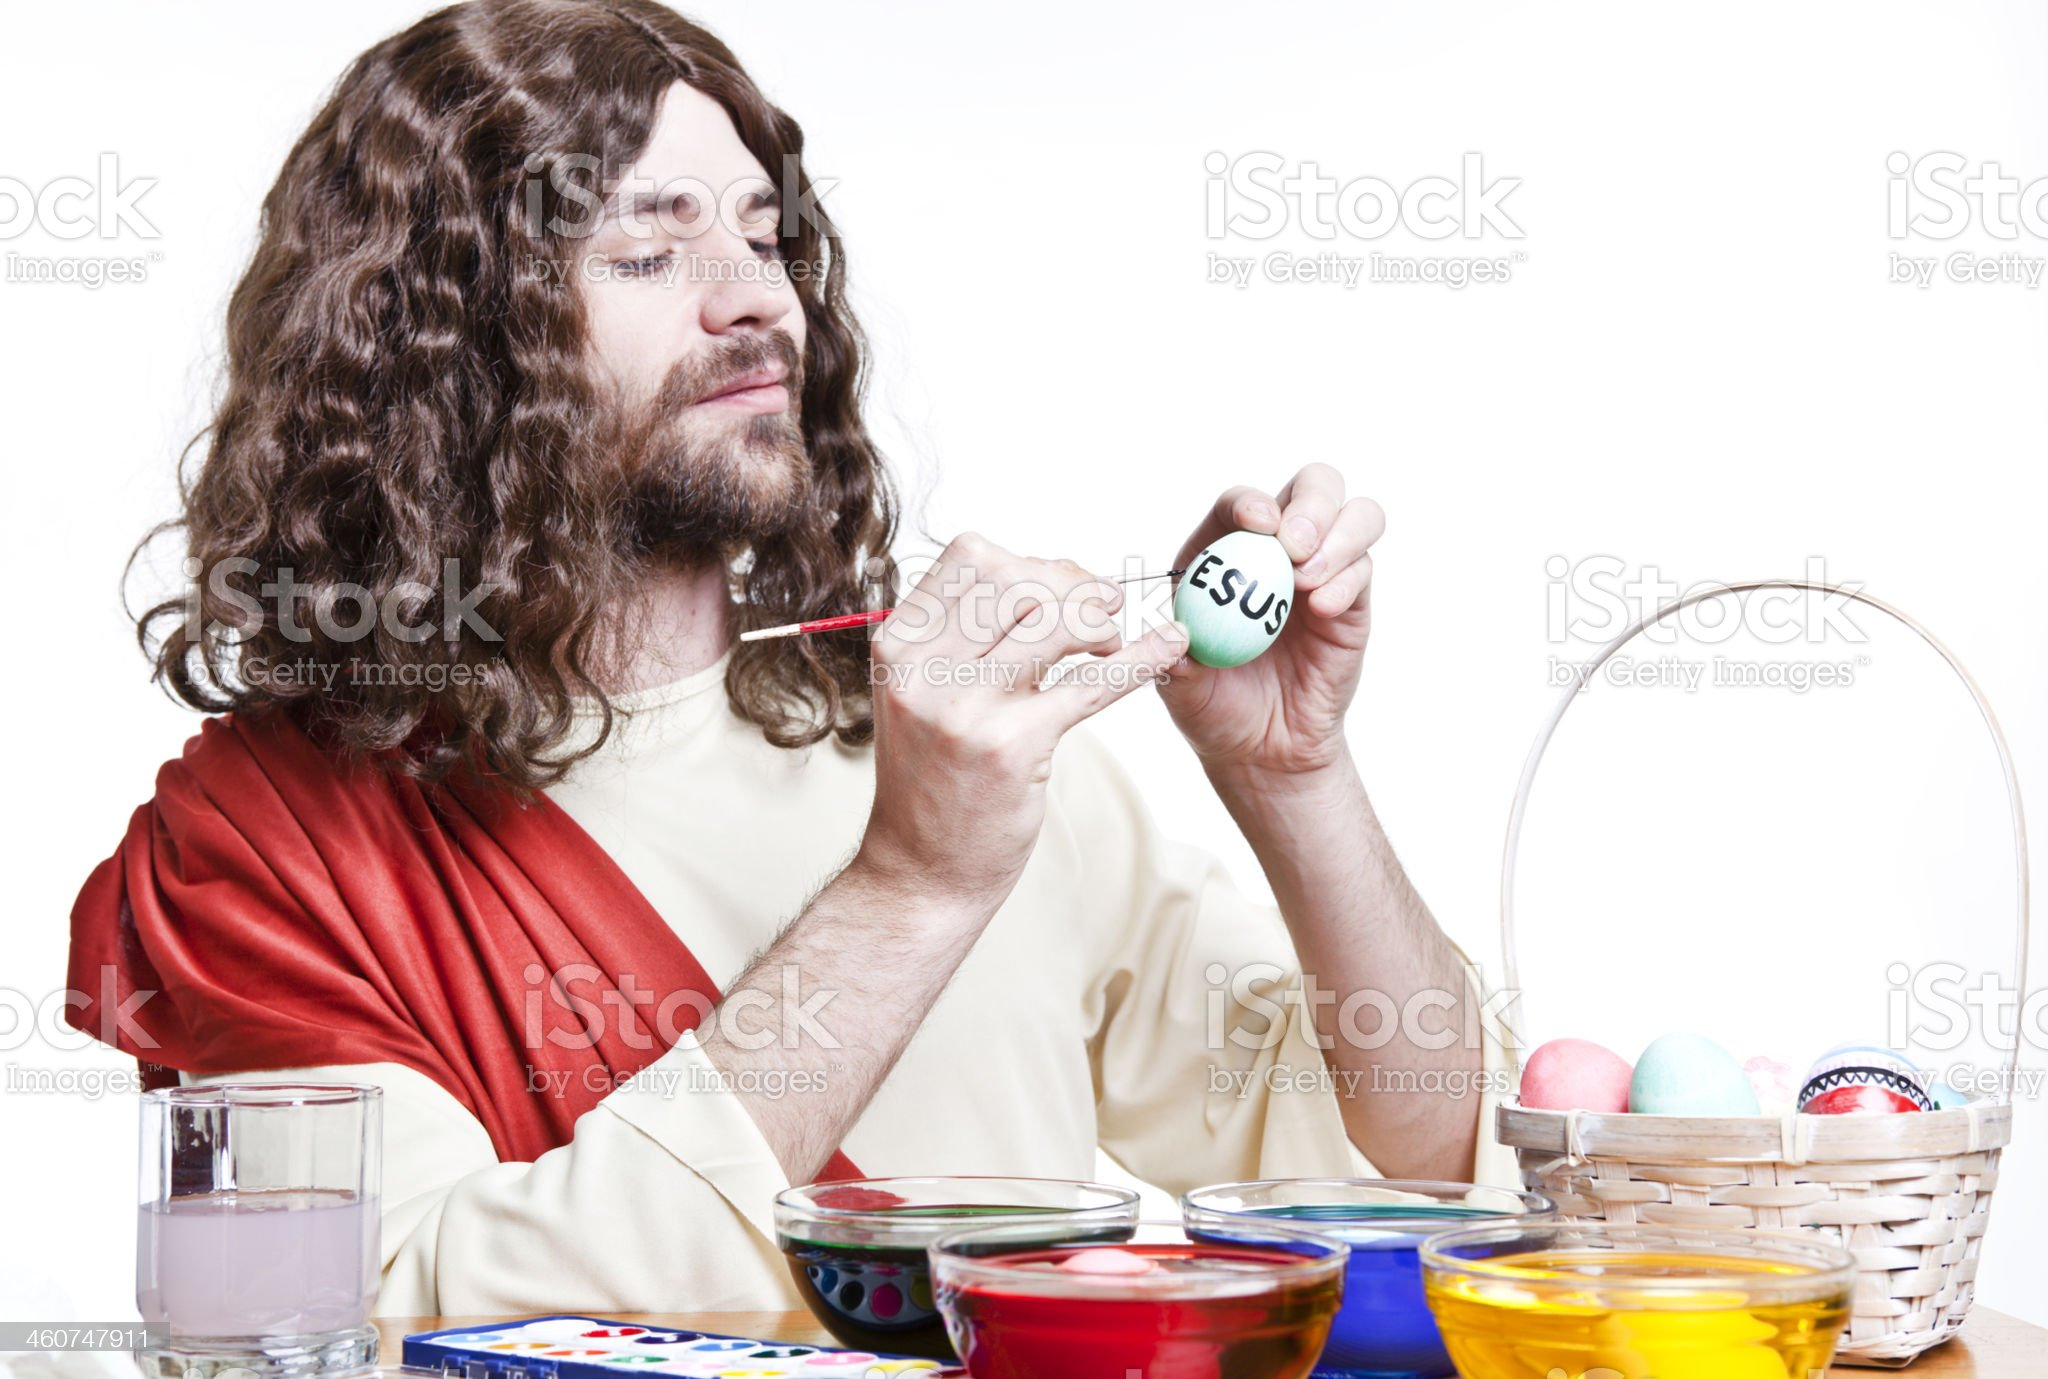 Jesus Decorating Easter Eggs royalty-free stock photo